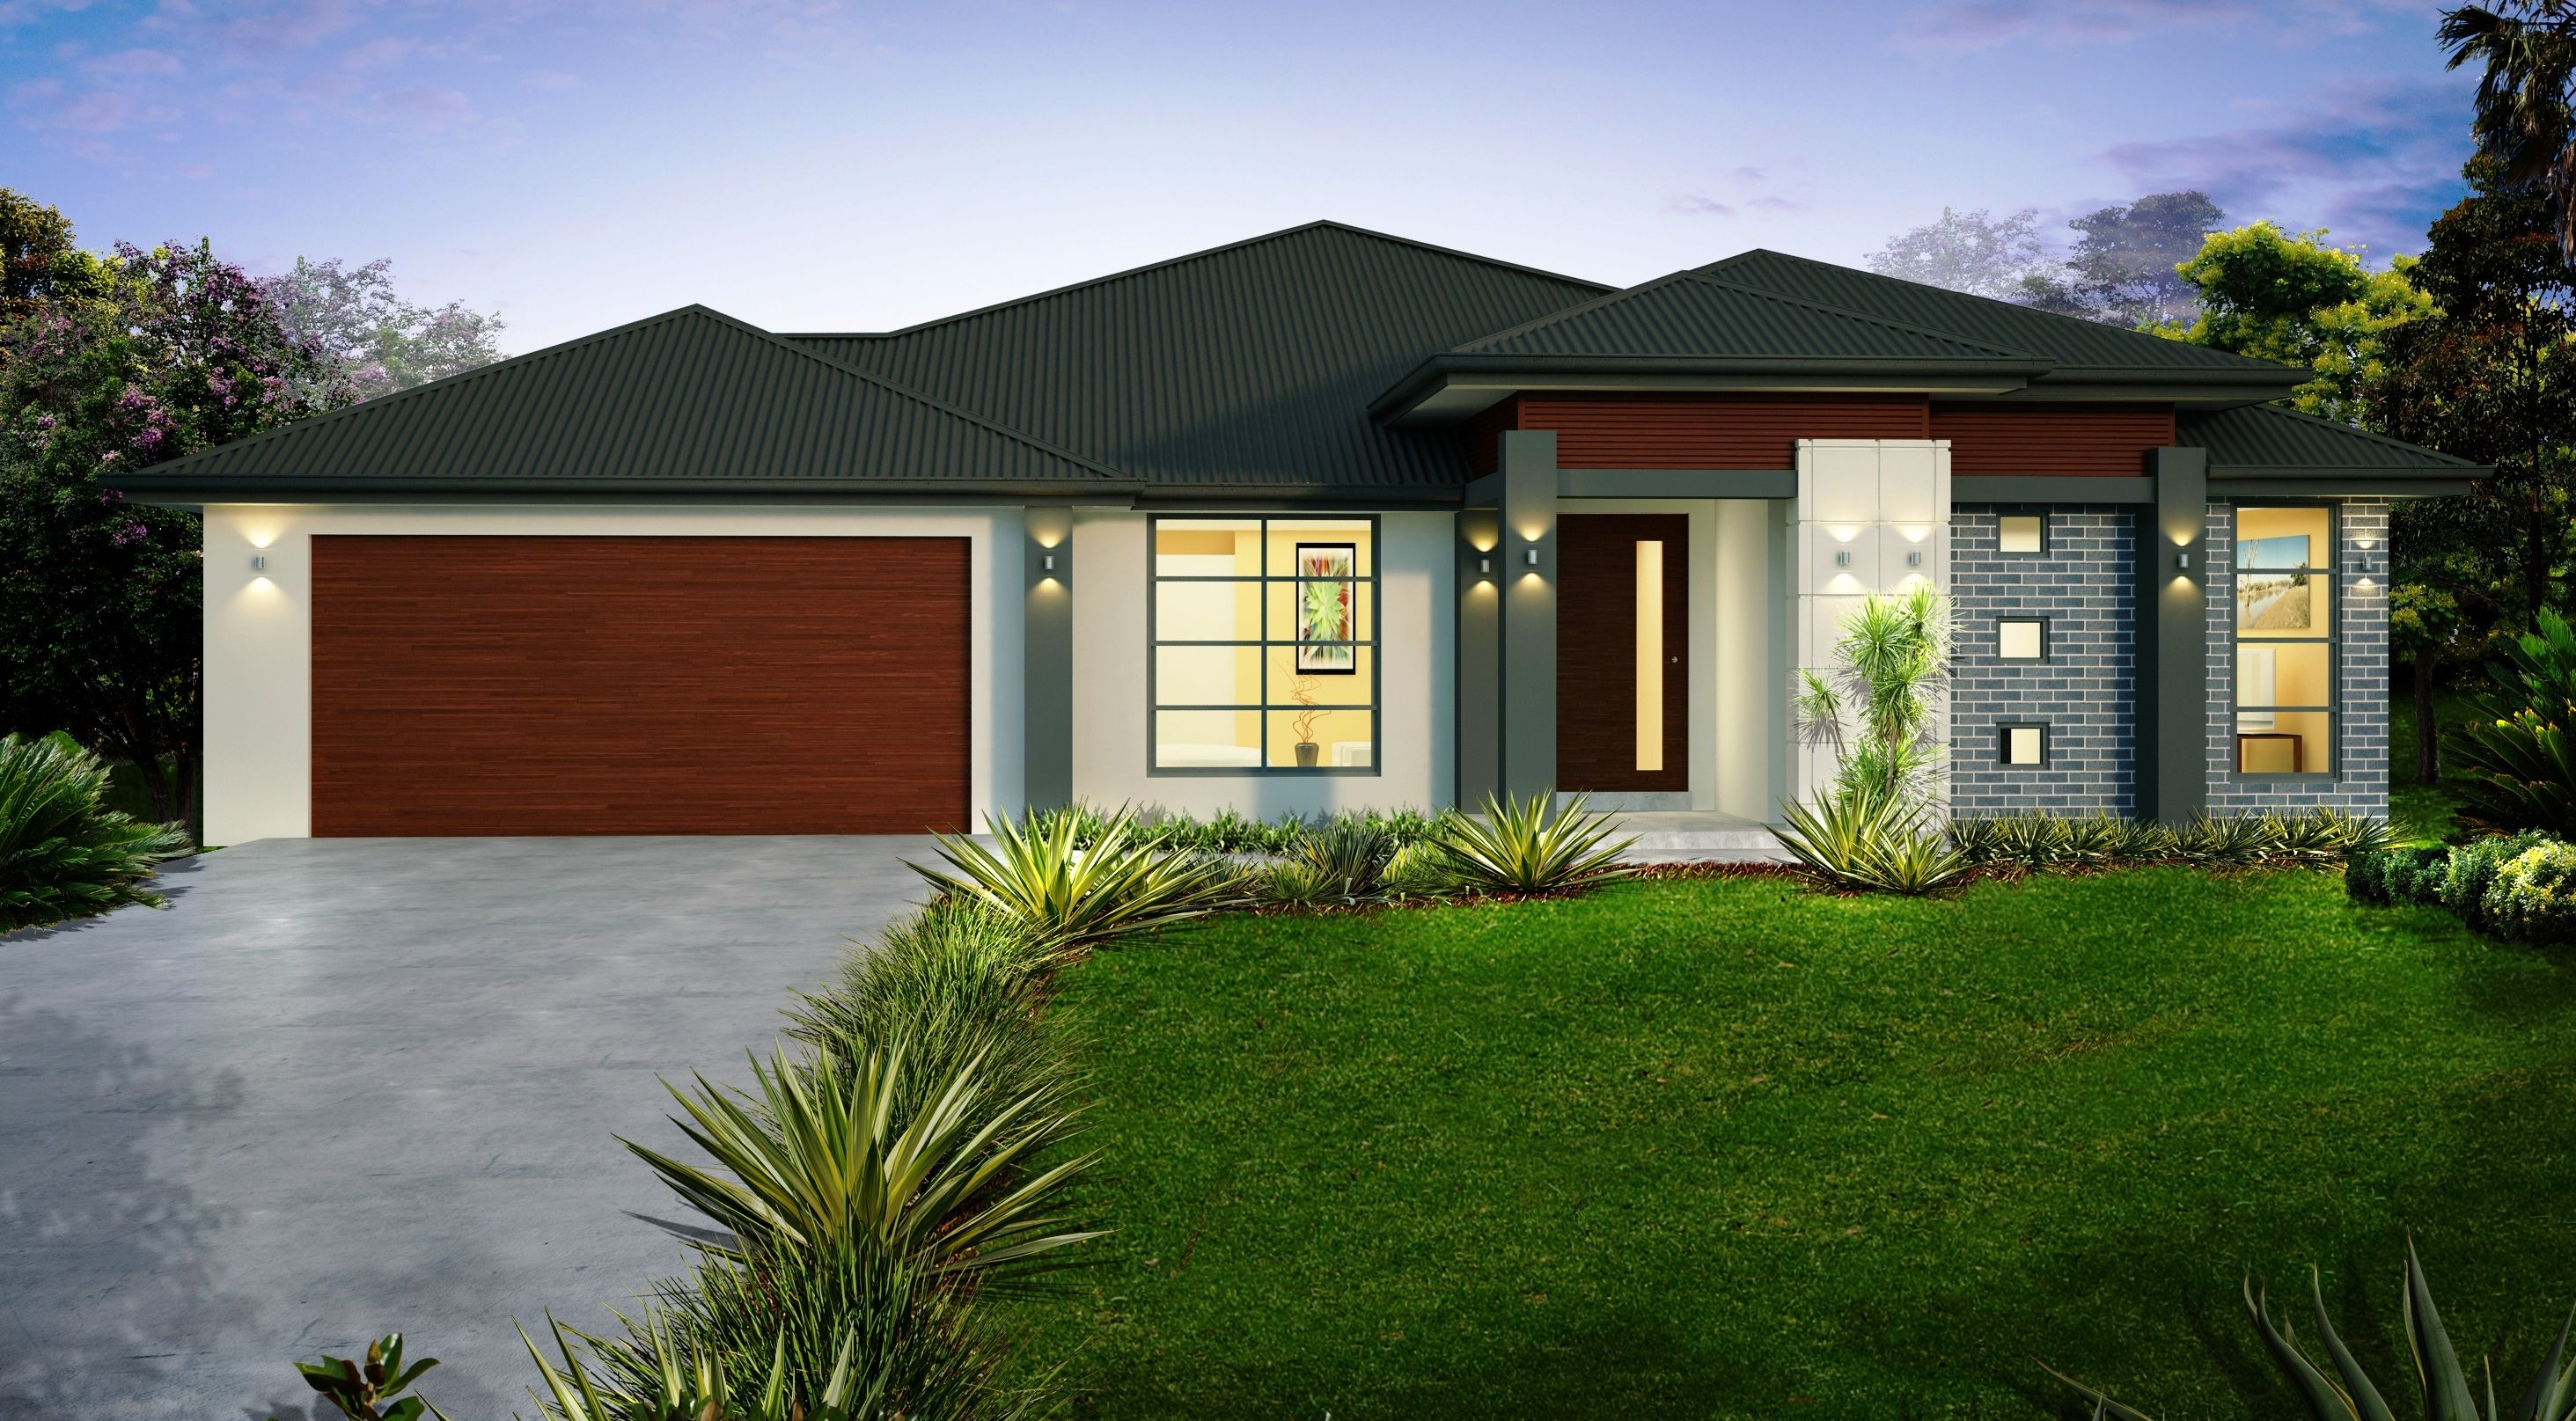 Single storey house design the orlando designed with the family in mind this modern floor plan will meet the needs of everyone in the family